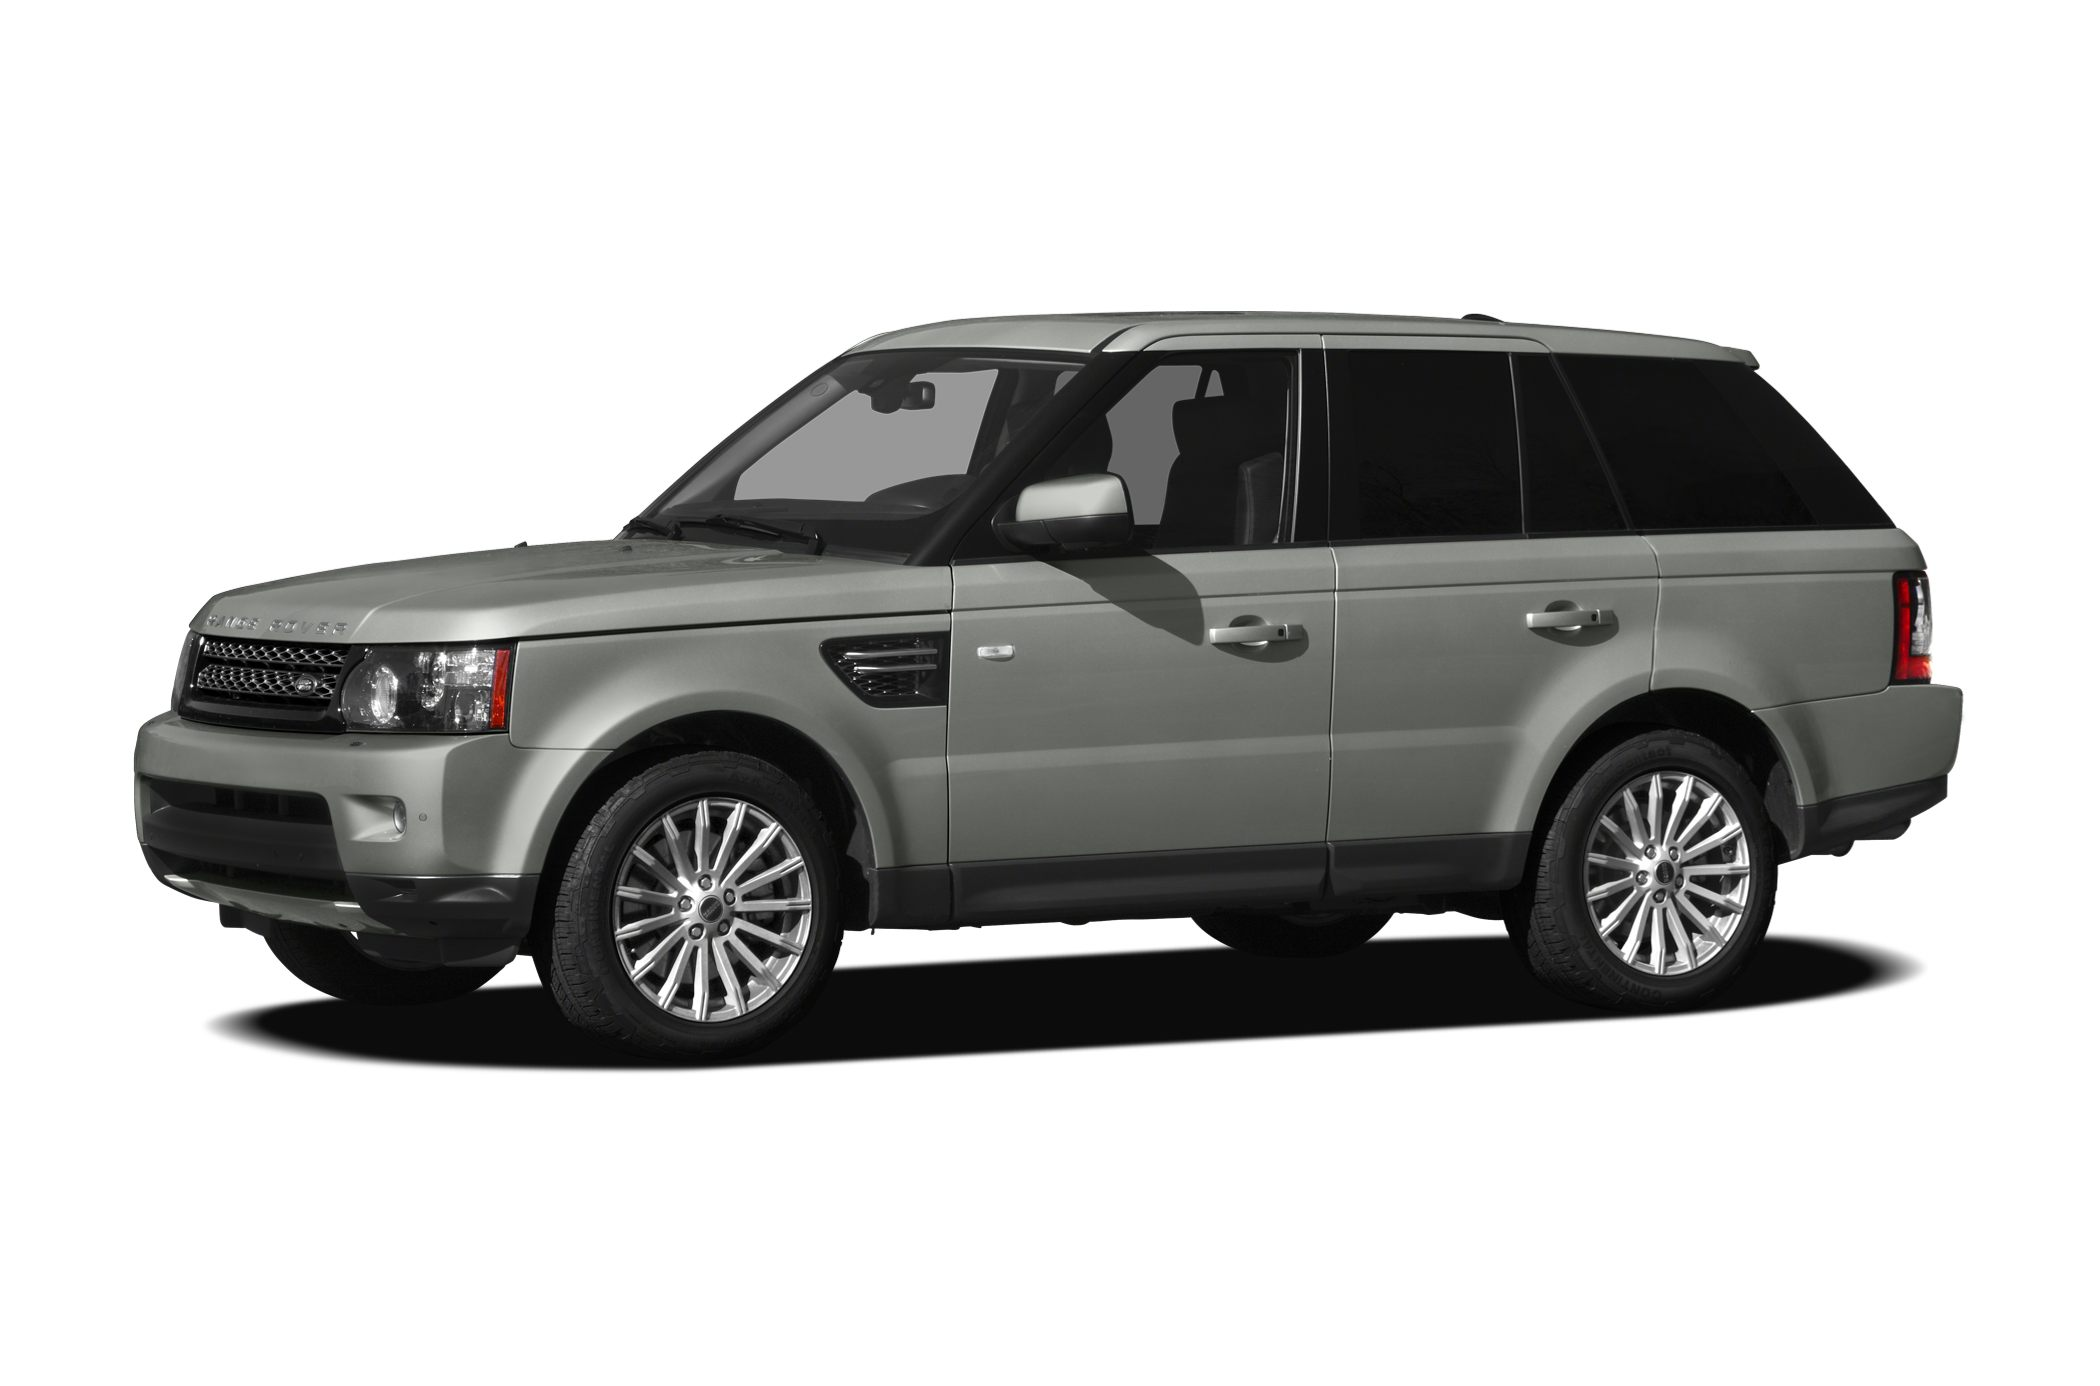 2013 Land Rover Range Rover Sport HSE SUV for sale in Parsippany for $55,499 with 17,532 miles.